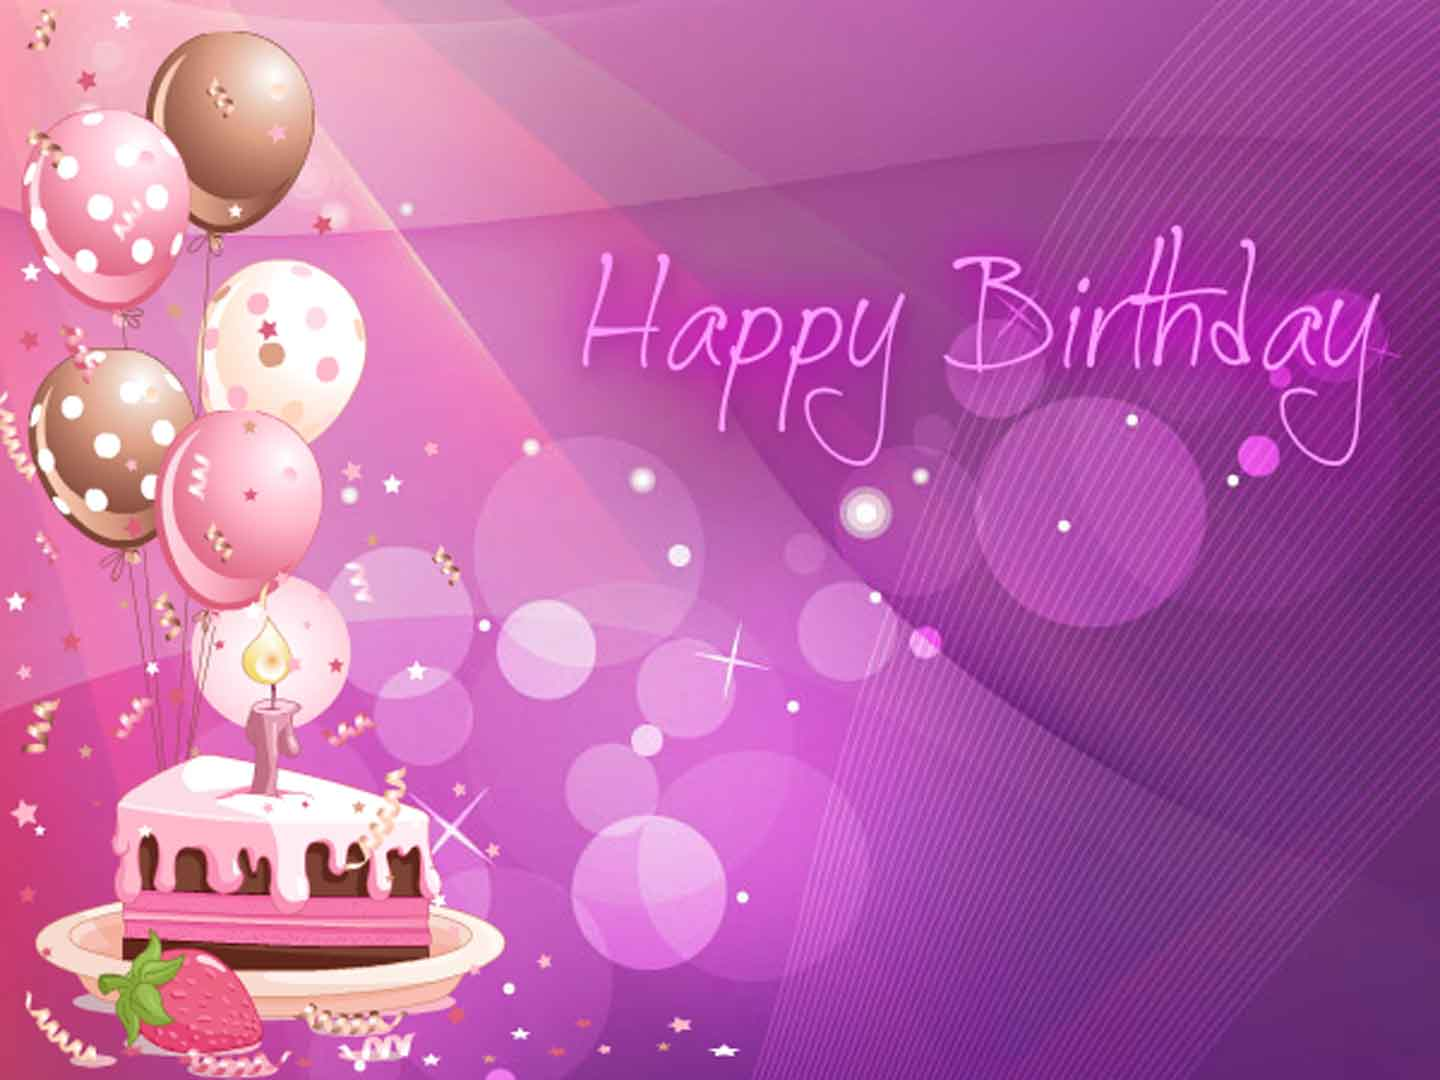 Happy Birthday Wallpapers Free